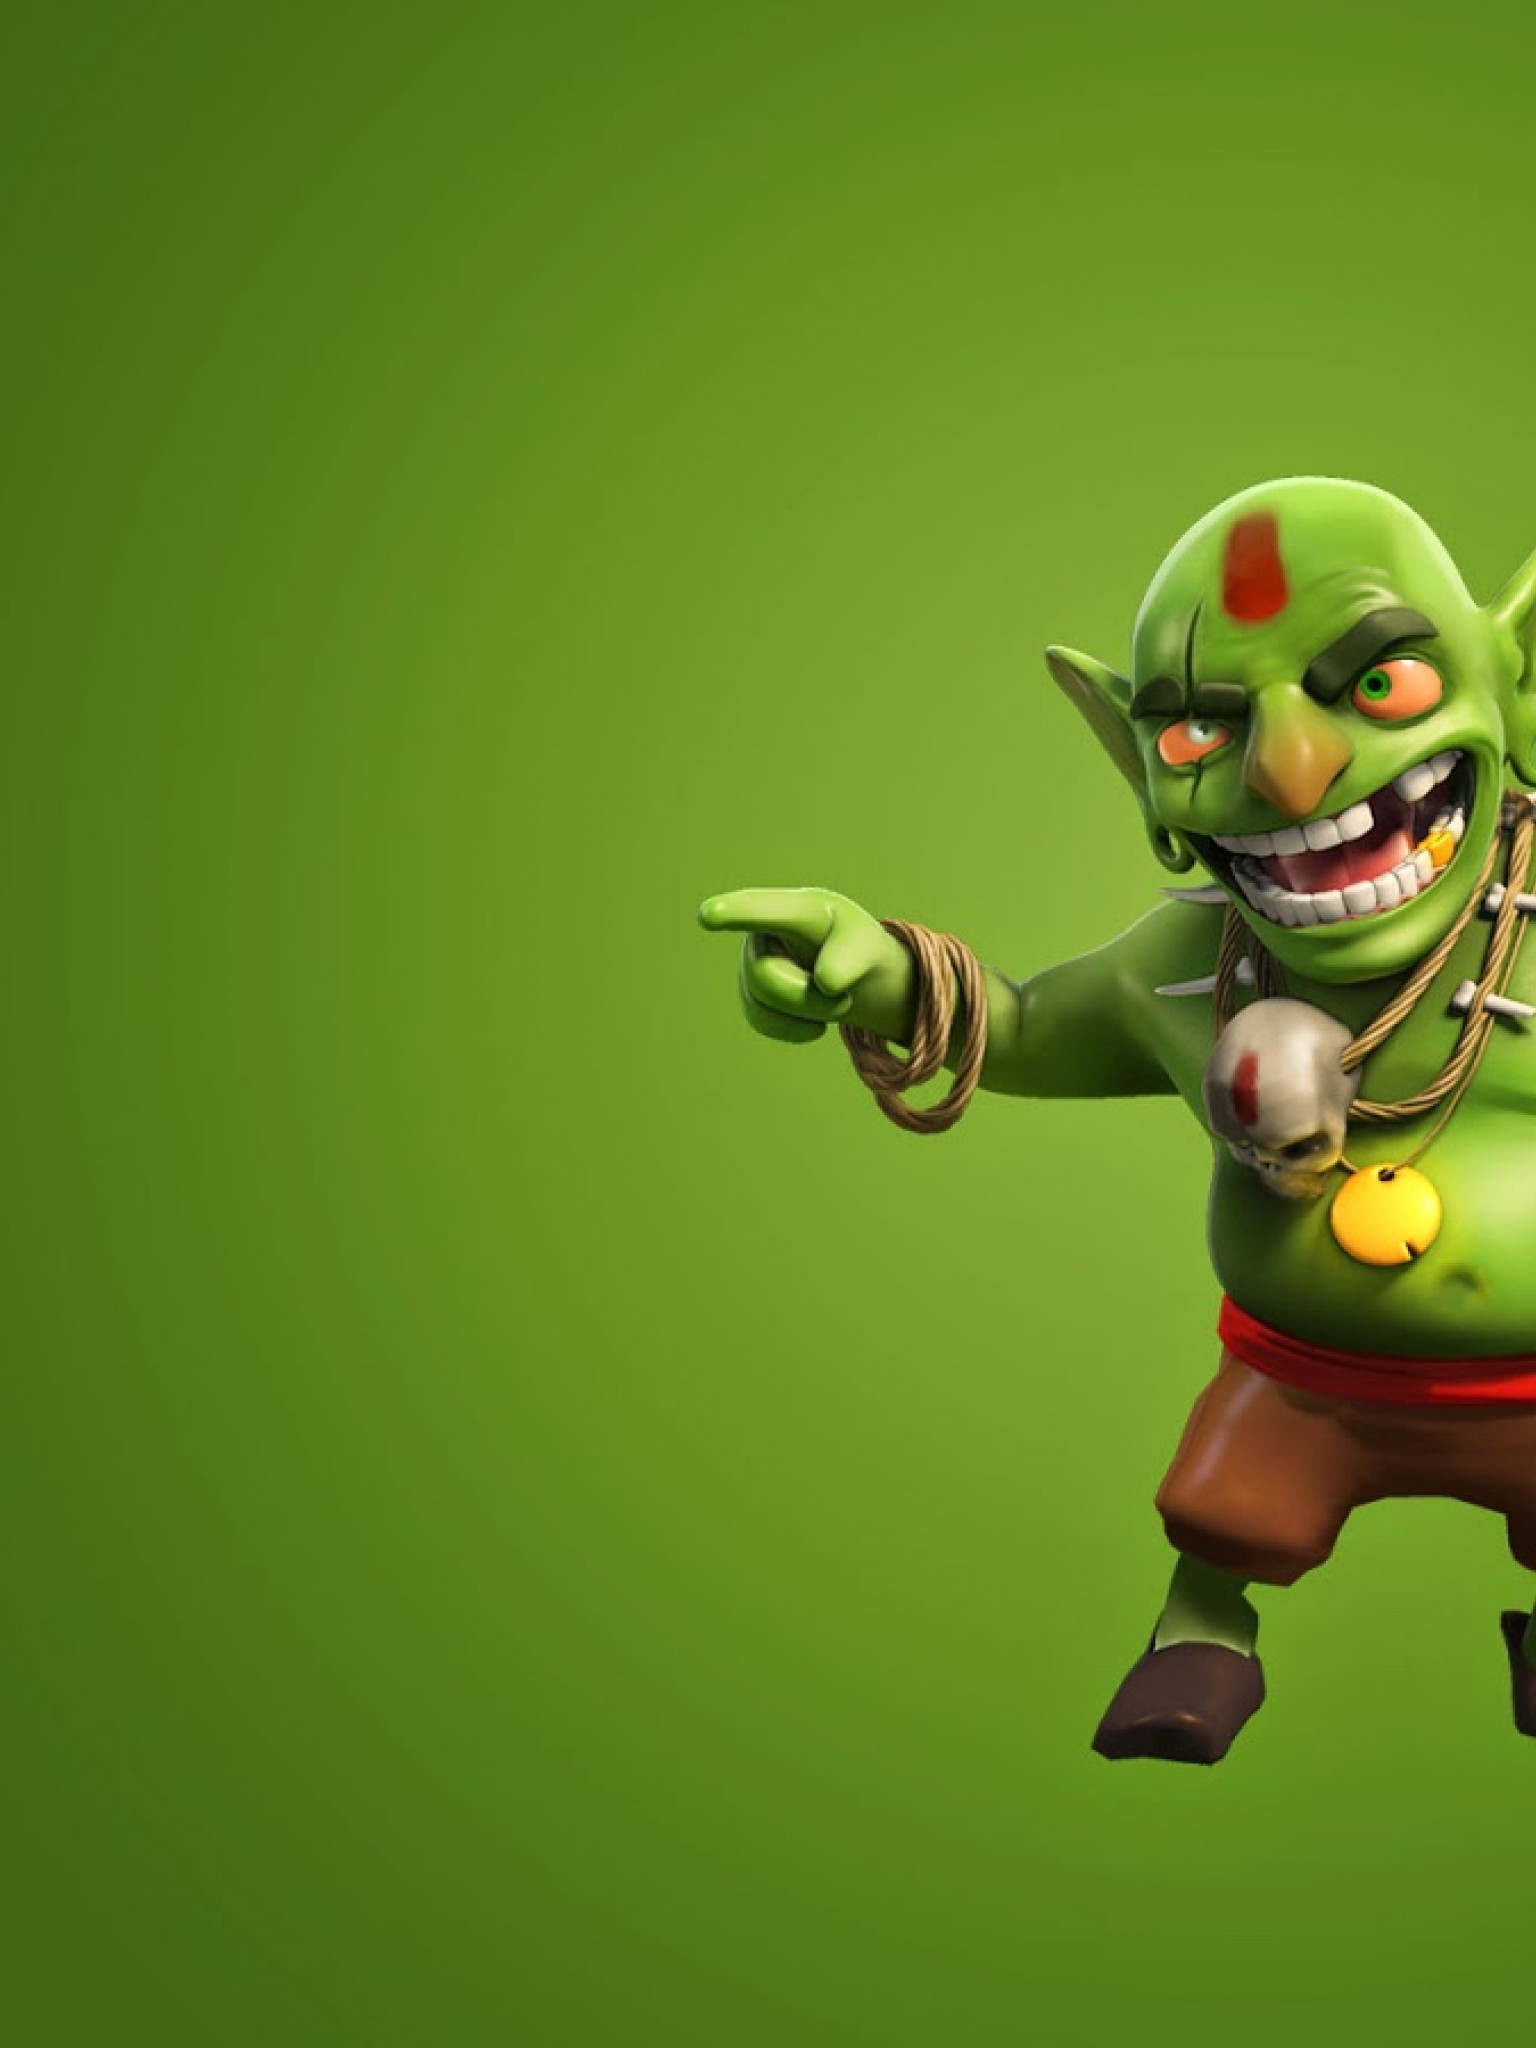 Clash Of Clans Mobile Wallpaper Hd - Game Wallpapers